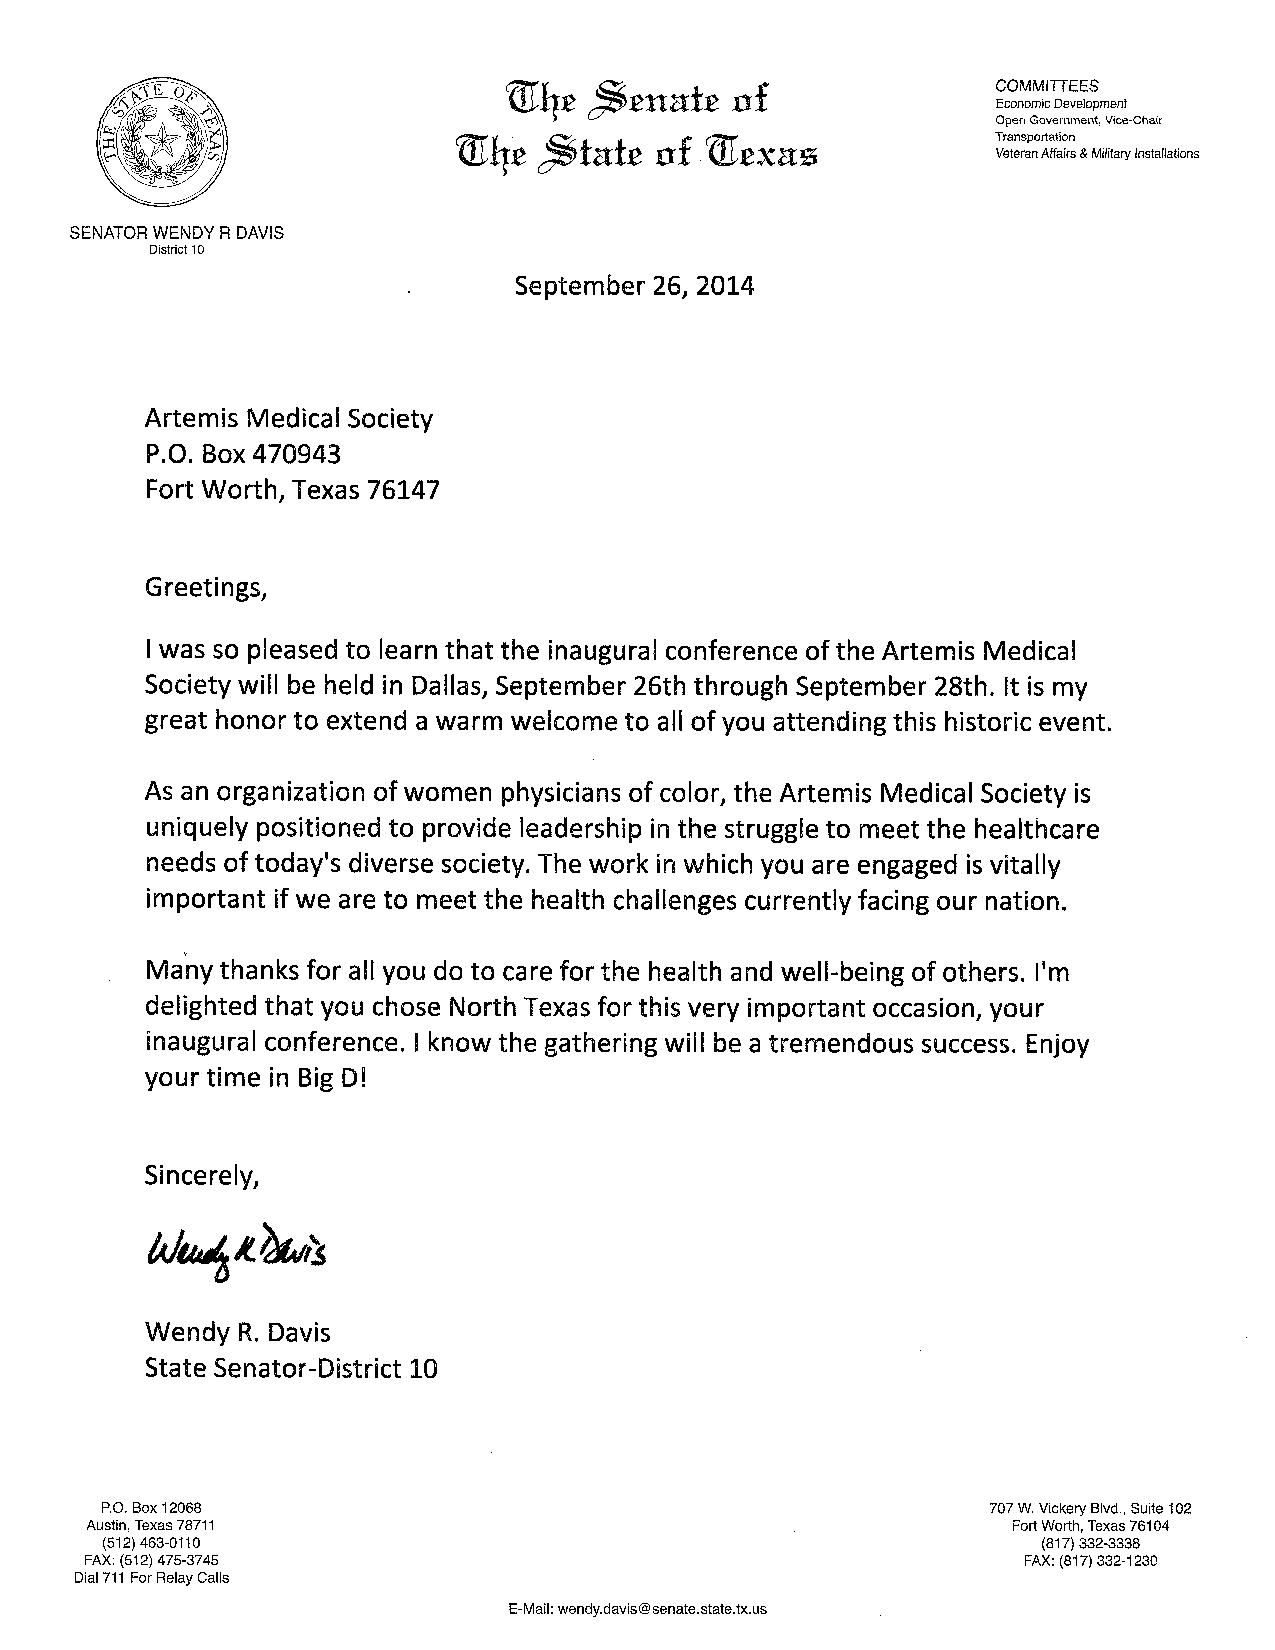 Welcome Letter From Texas State Senator Wendy Davis